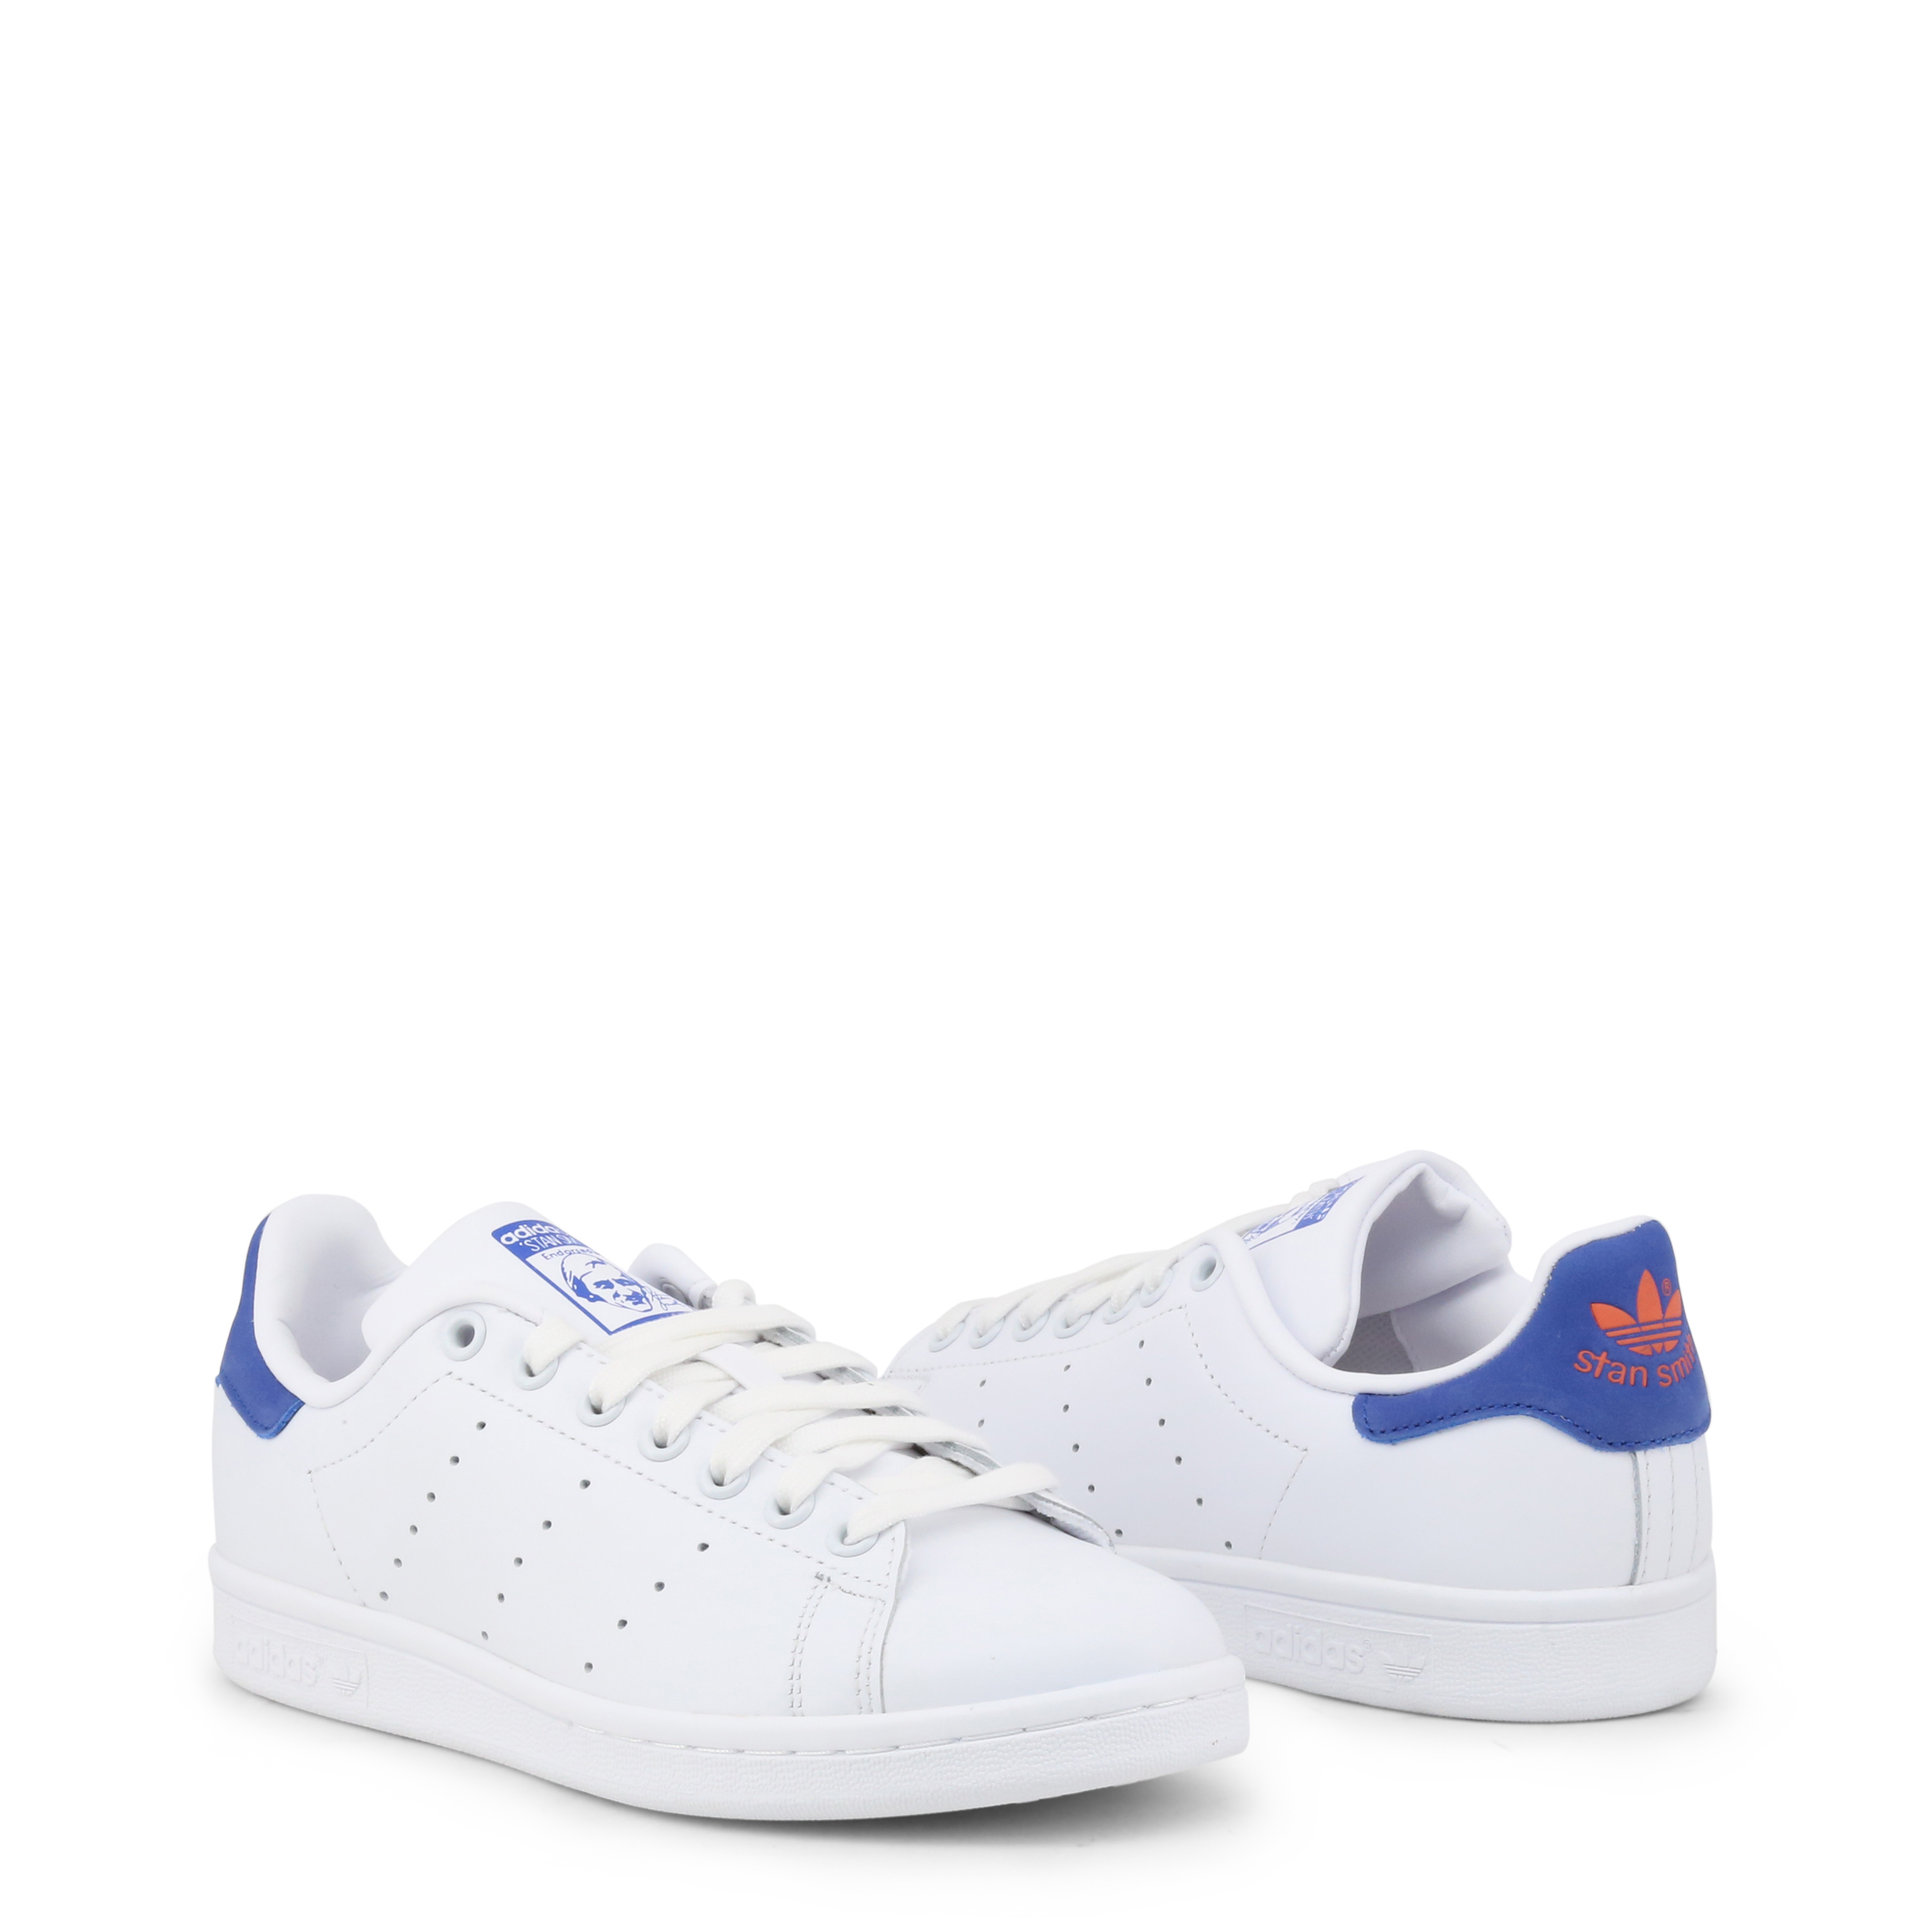 Baskets / Sport  Adidas StanSmith white